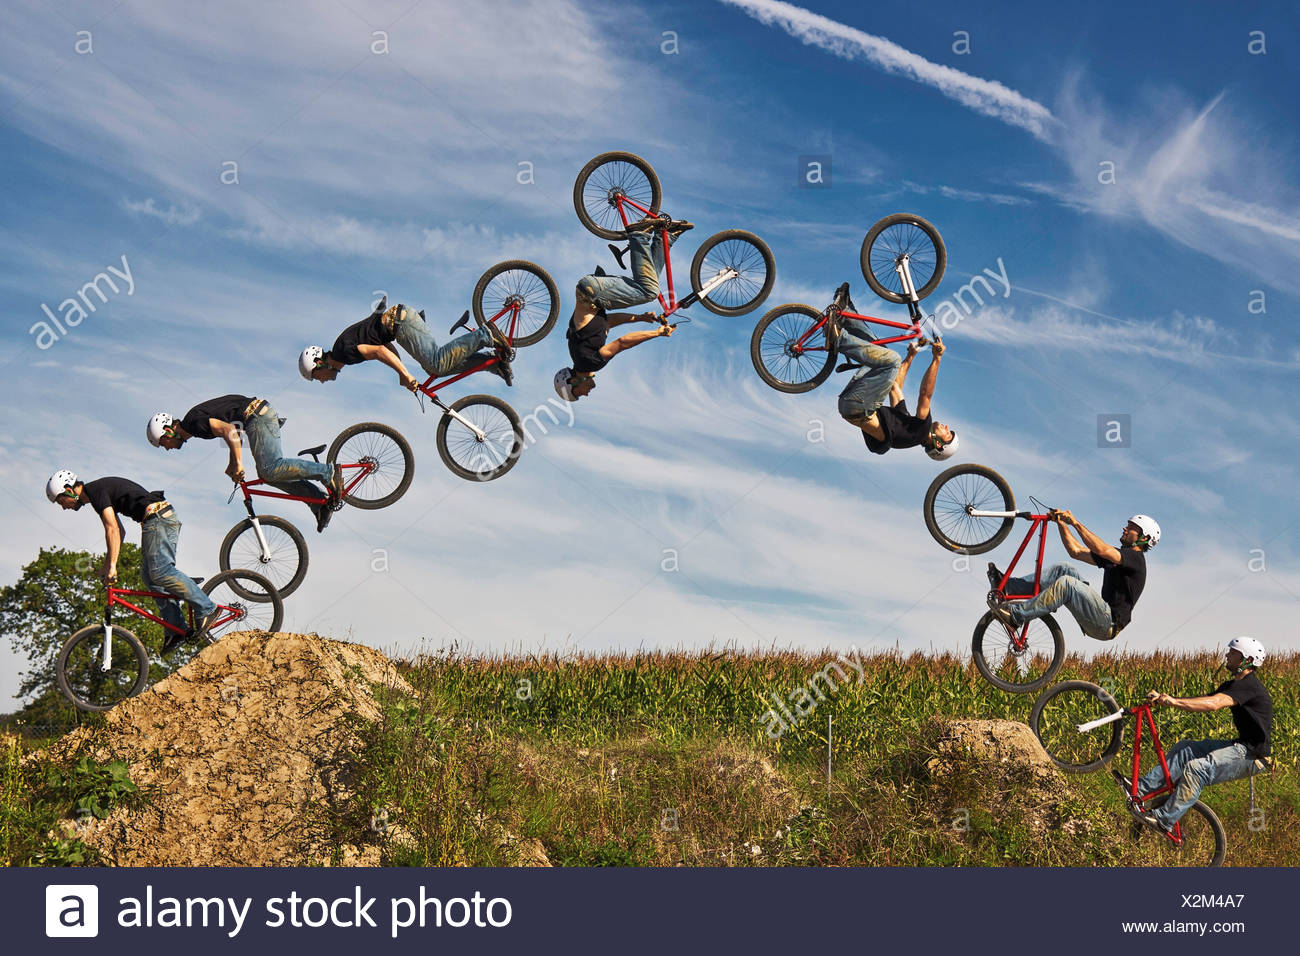 Man performing stunt on bmx bike, digital composite - Stock Image